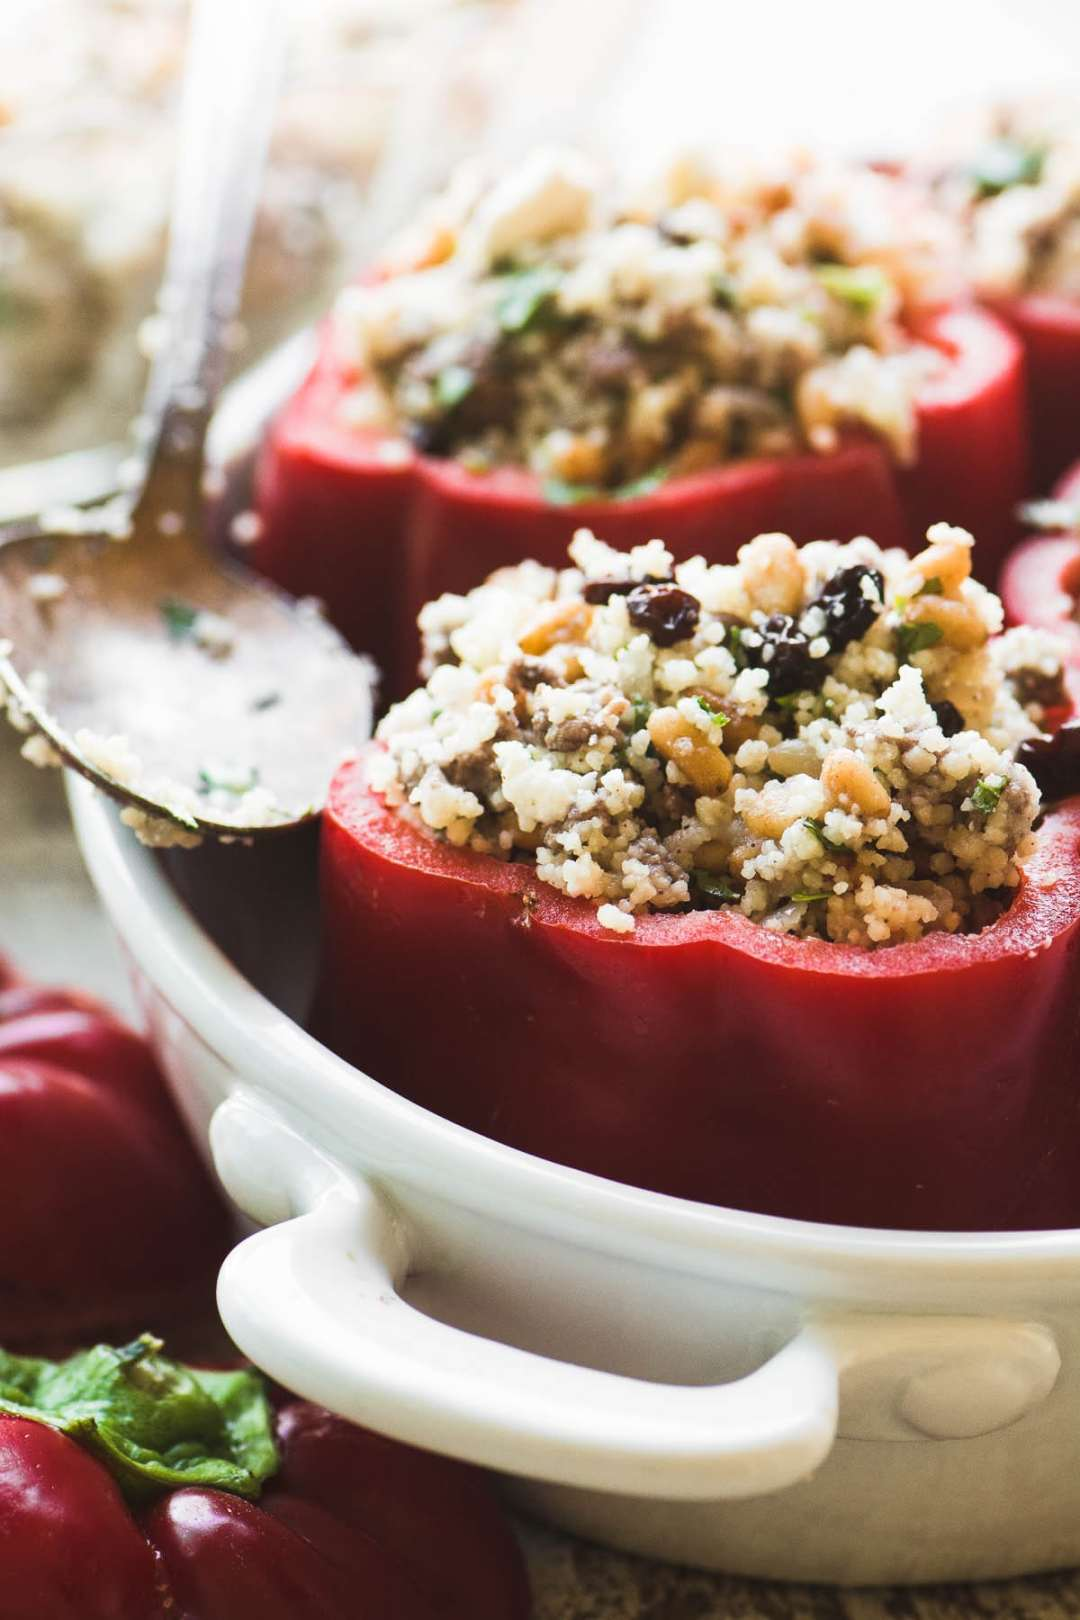 Spiced lamb and couscous stuffed peppers ready to bake